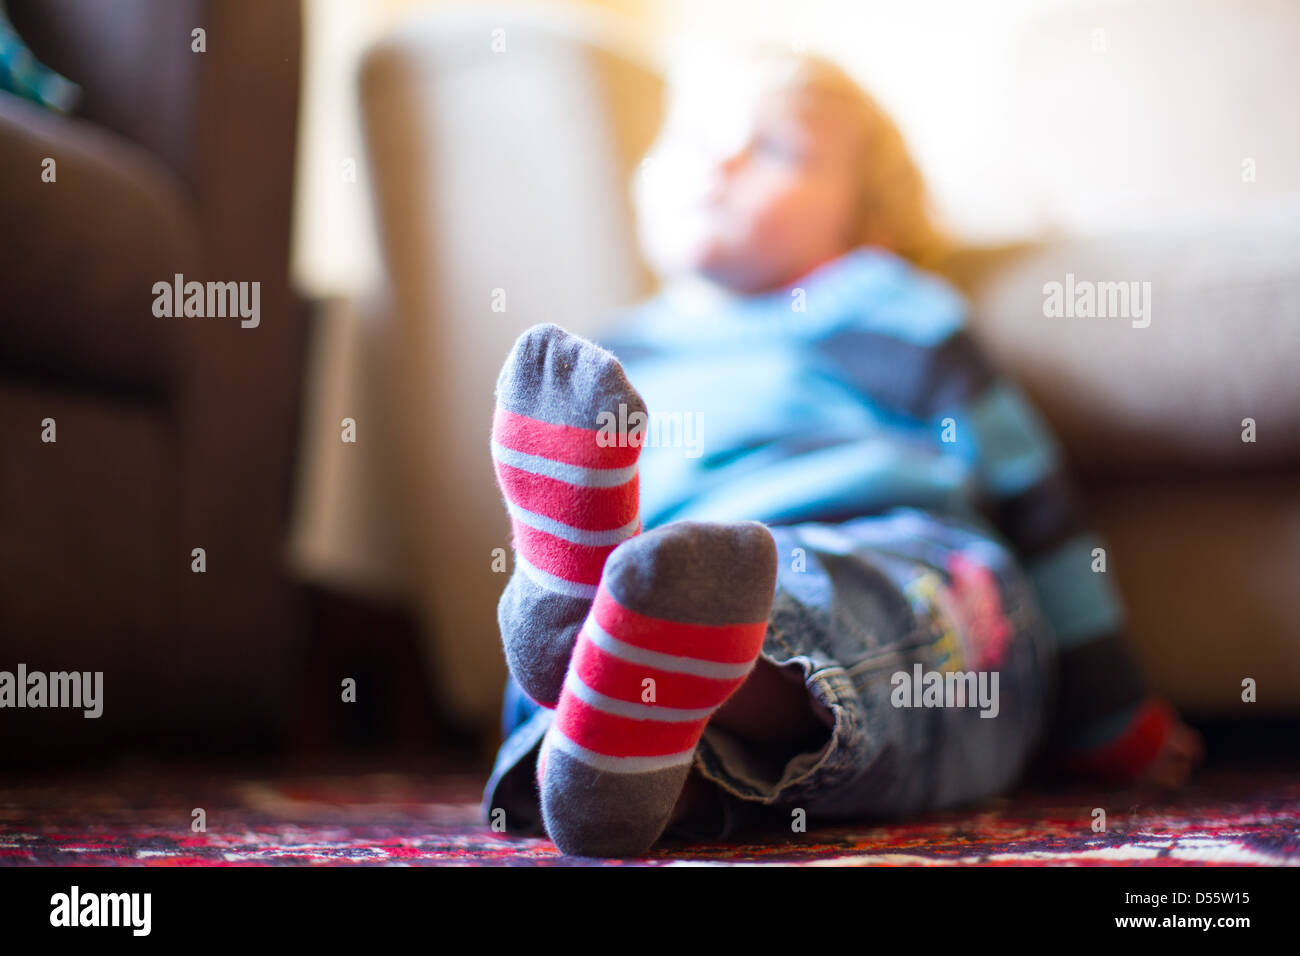 Young Boy Watching the Television - Stock Image